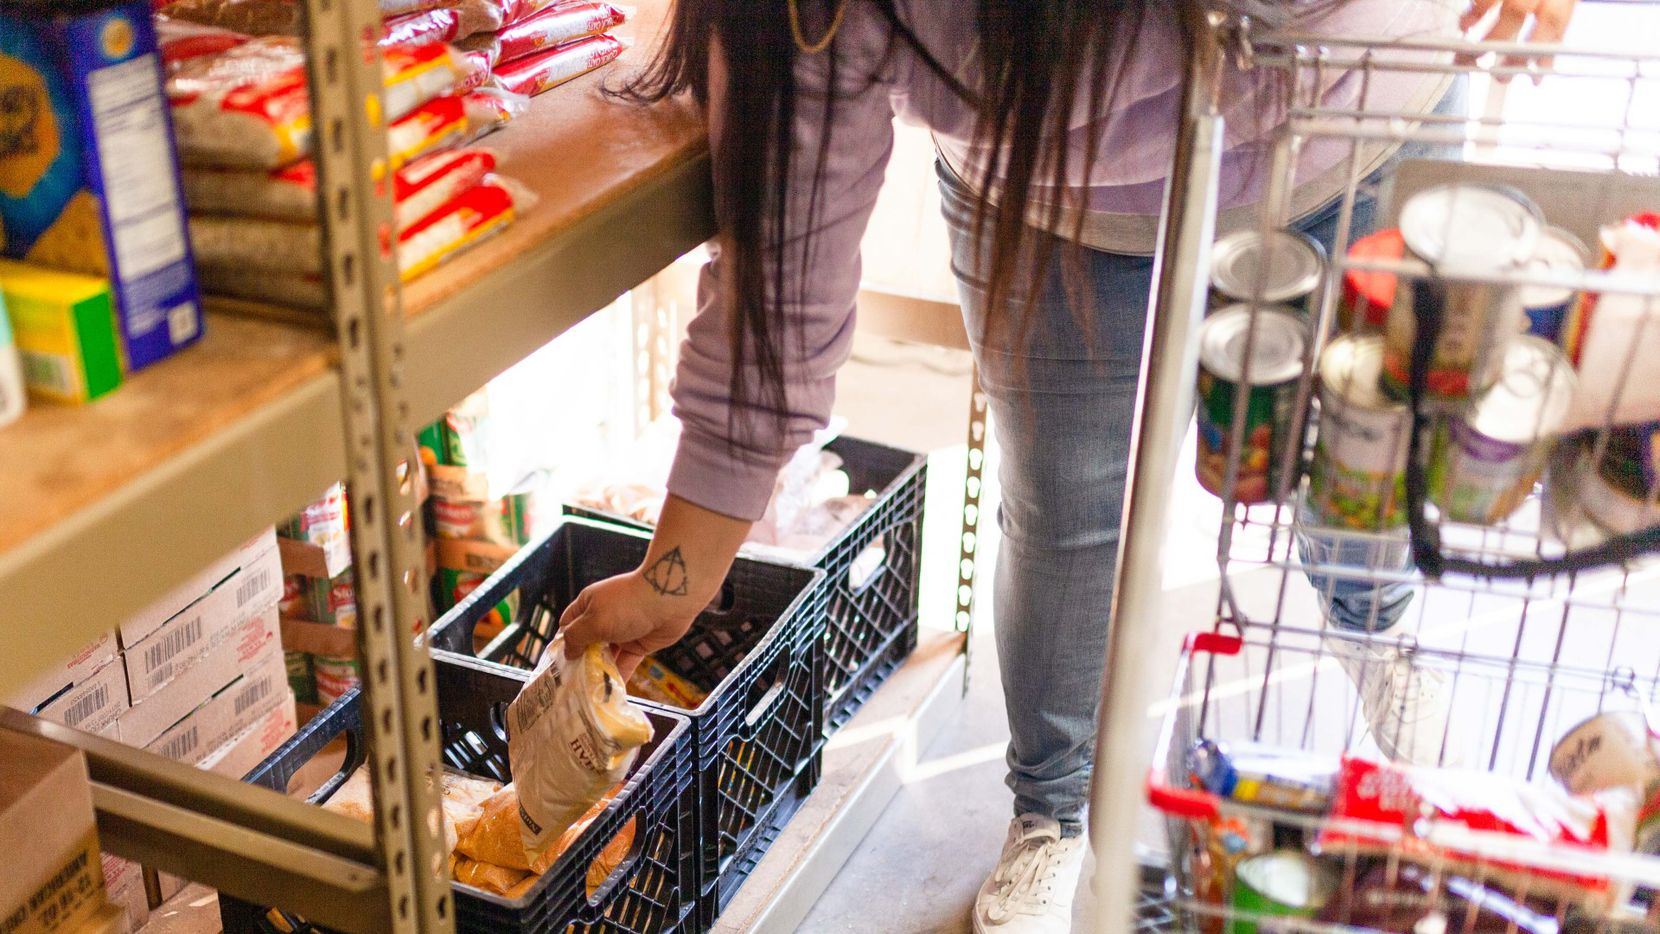 Mission Oak Cliff's summer feeding program provides two weeks' worth of groceries and food, twice a month, to families in need.